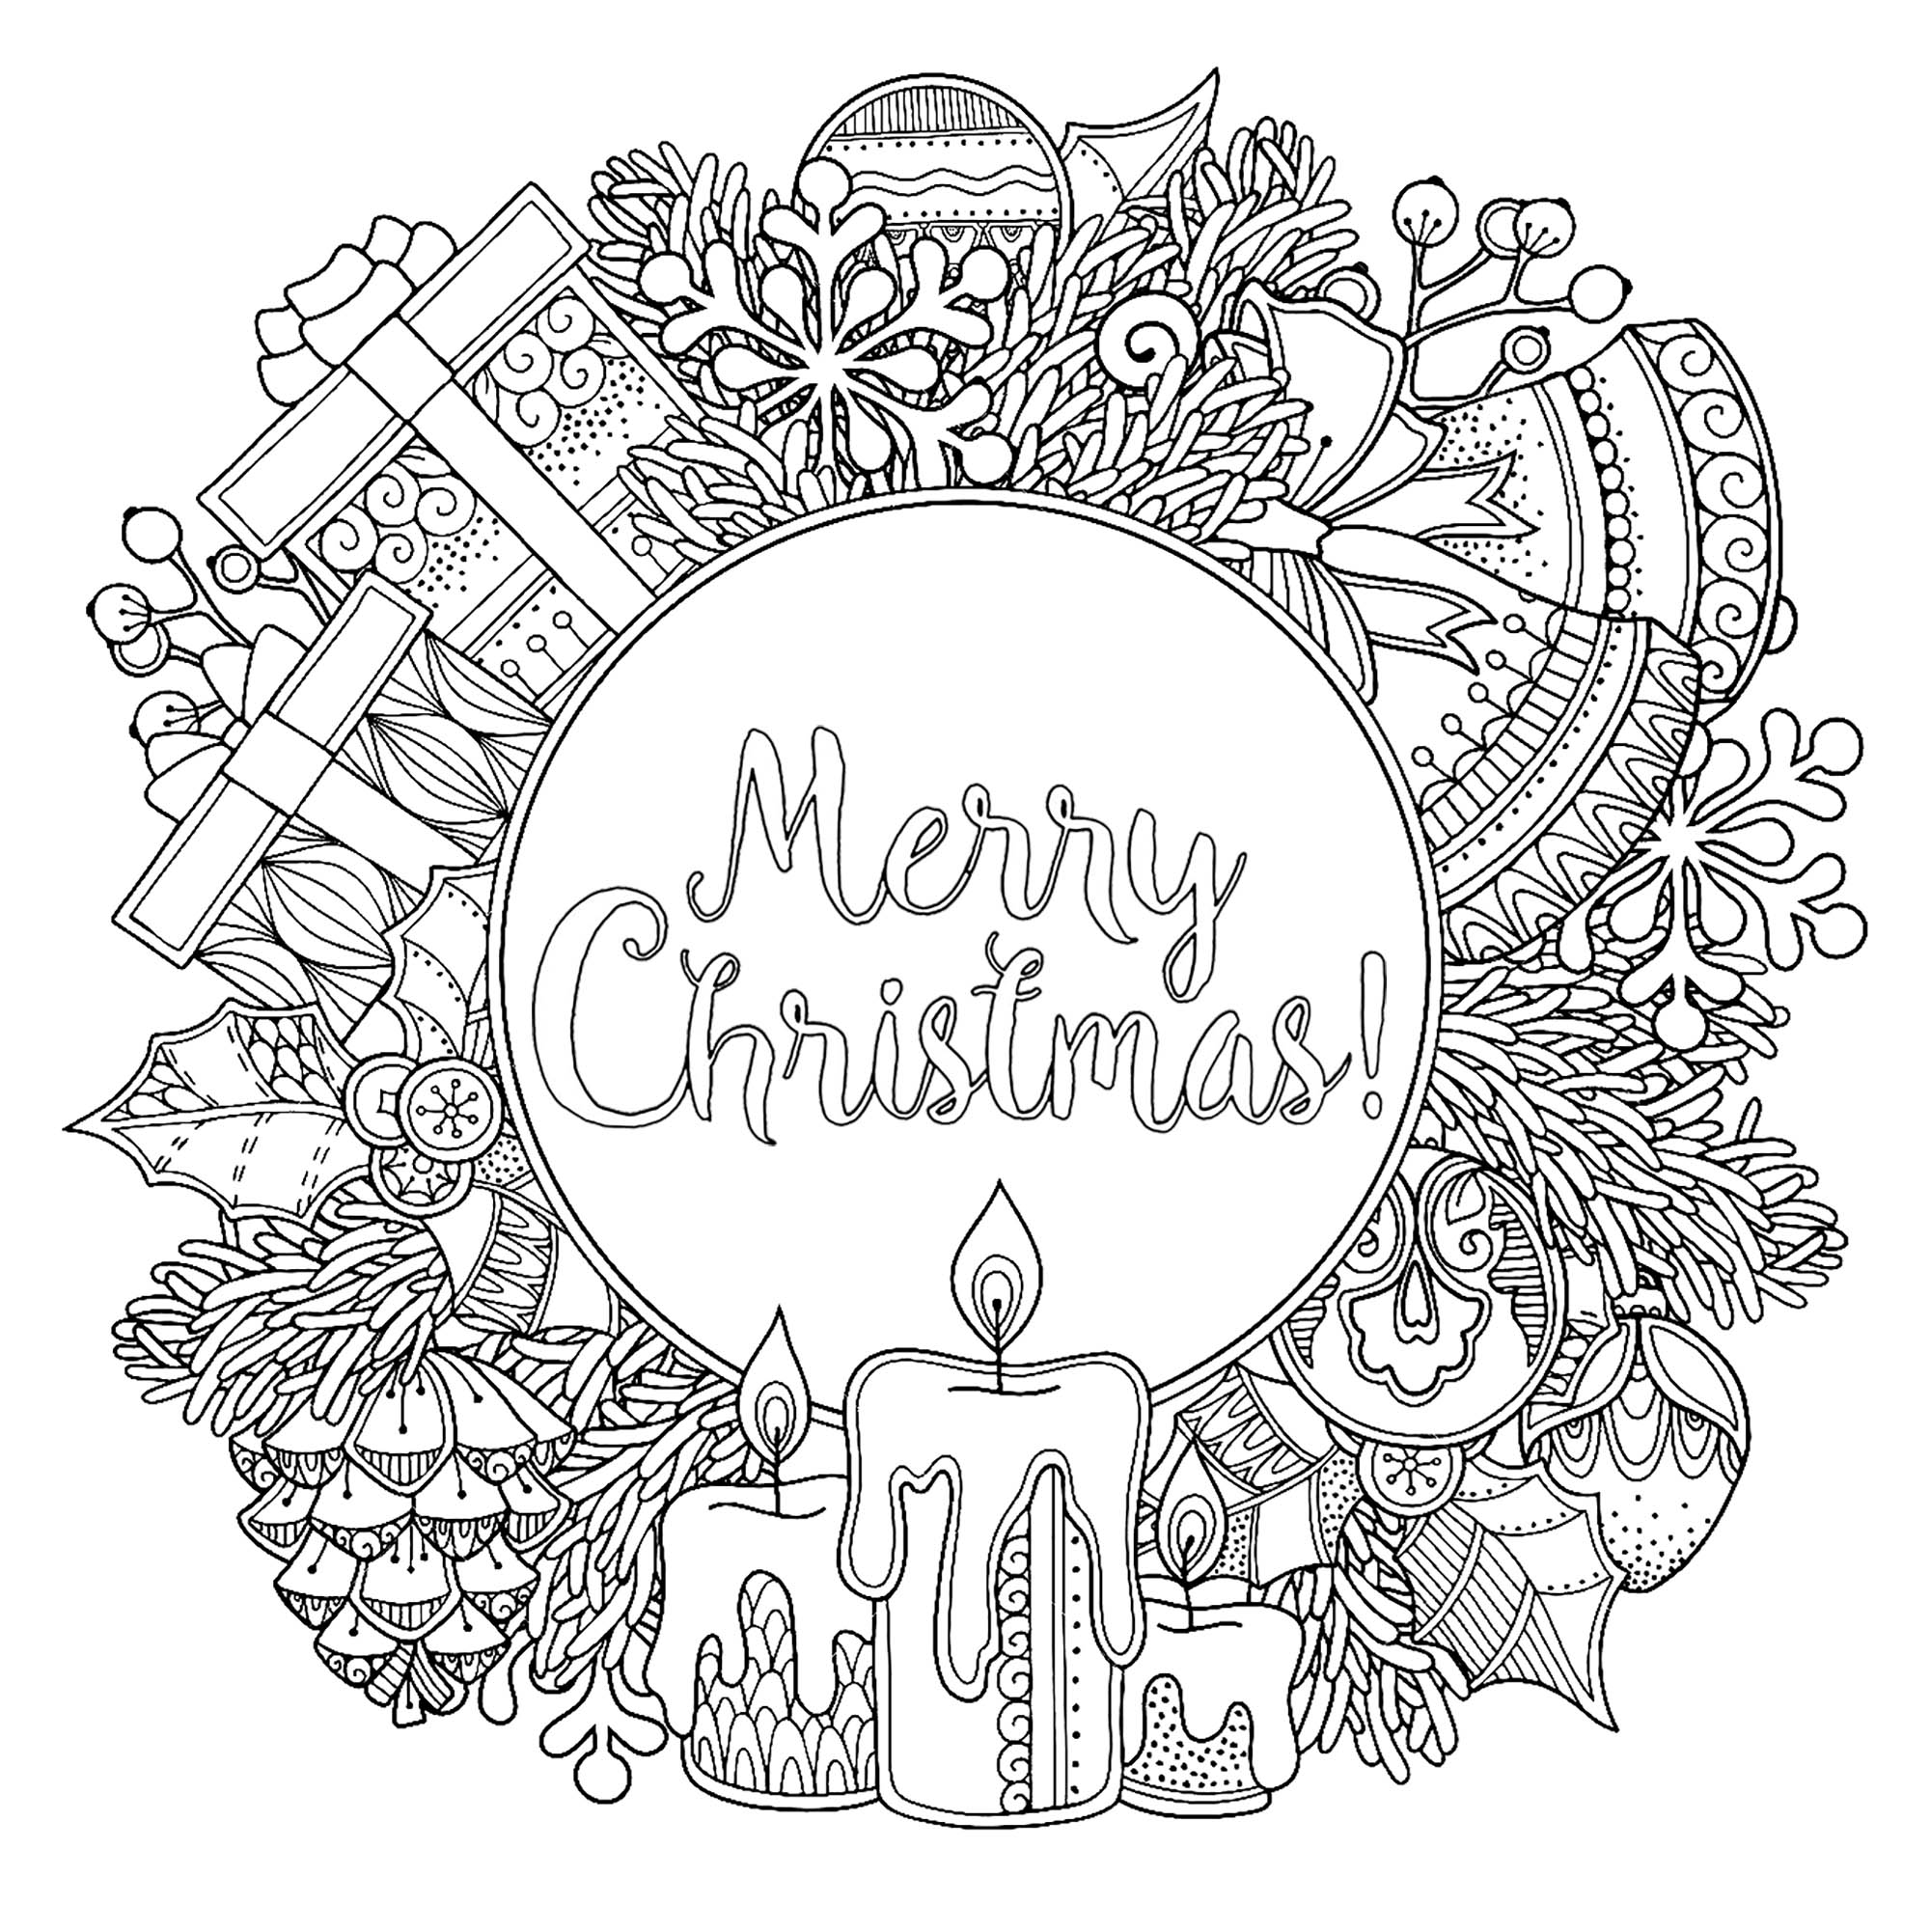 Doodl Christmas wreath - Christmas Adult Coloring Pages